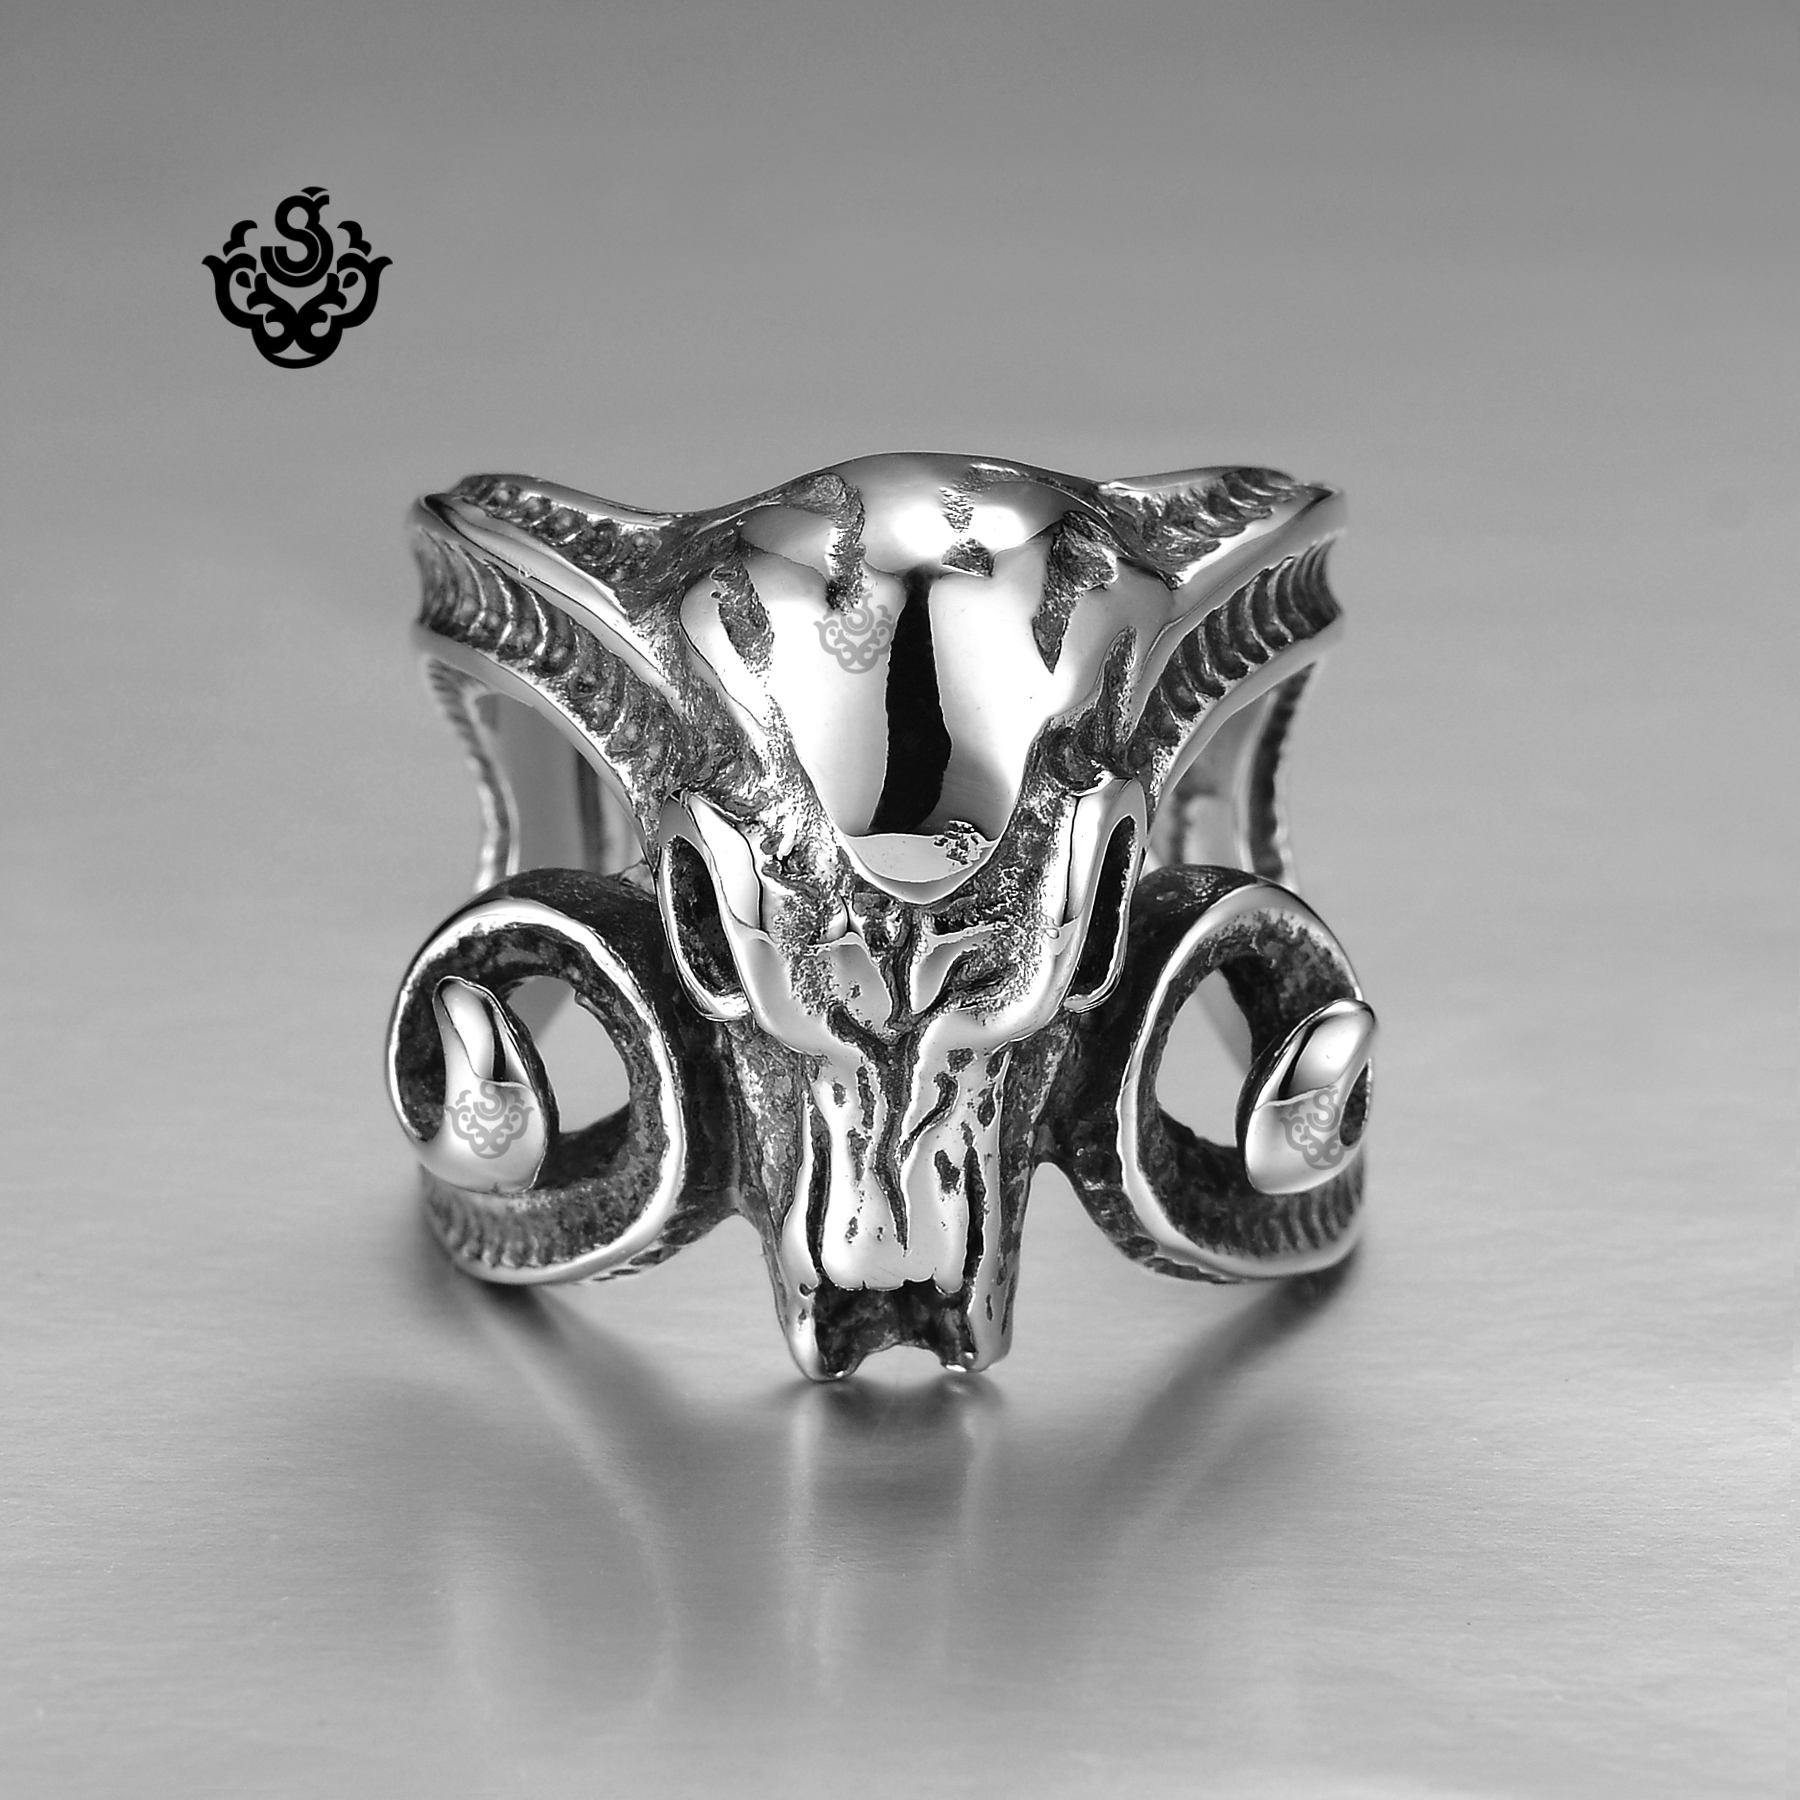 ring solid steel skull en reaper soft rings grim gothic engagement stainless death band silver